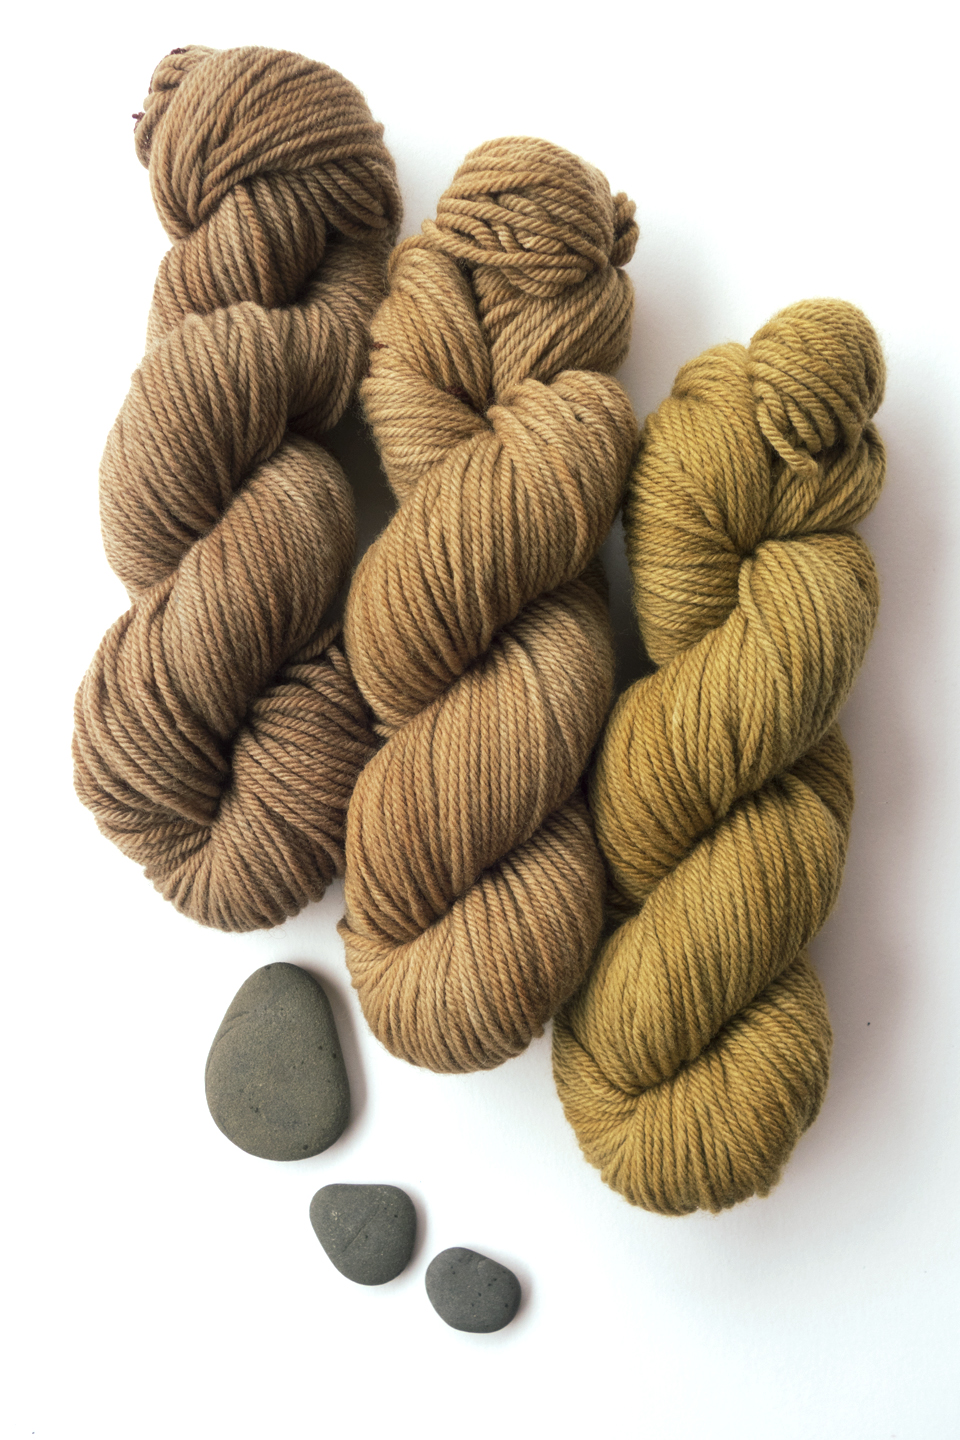 dyeing_WGW_8ply_28february2017_2.jpg